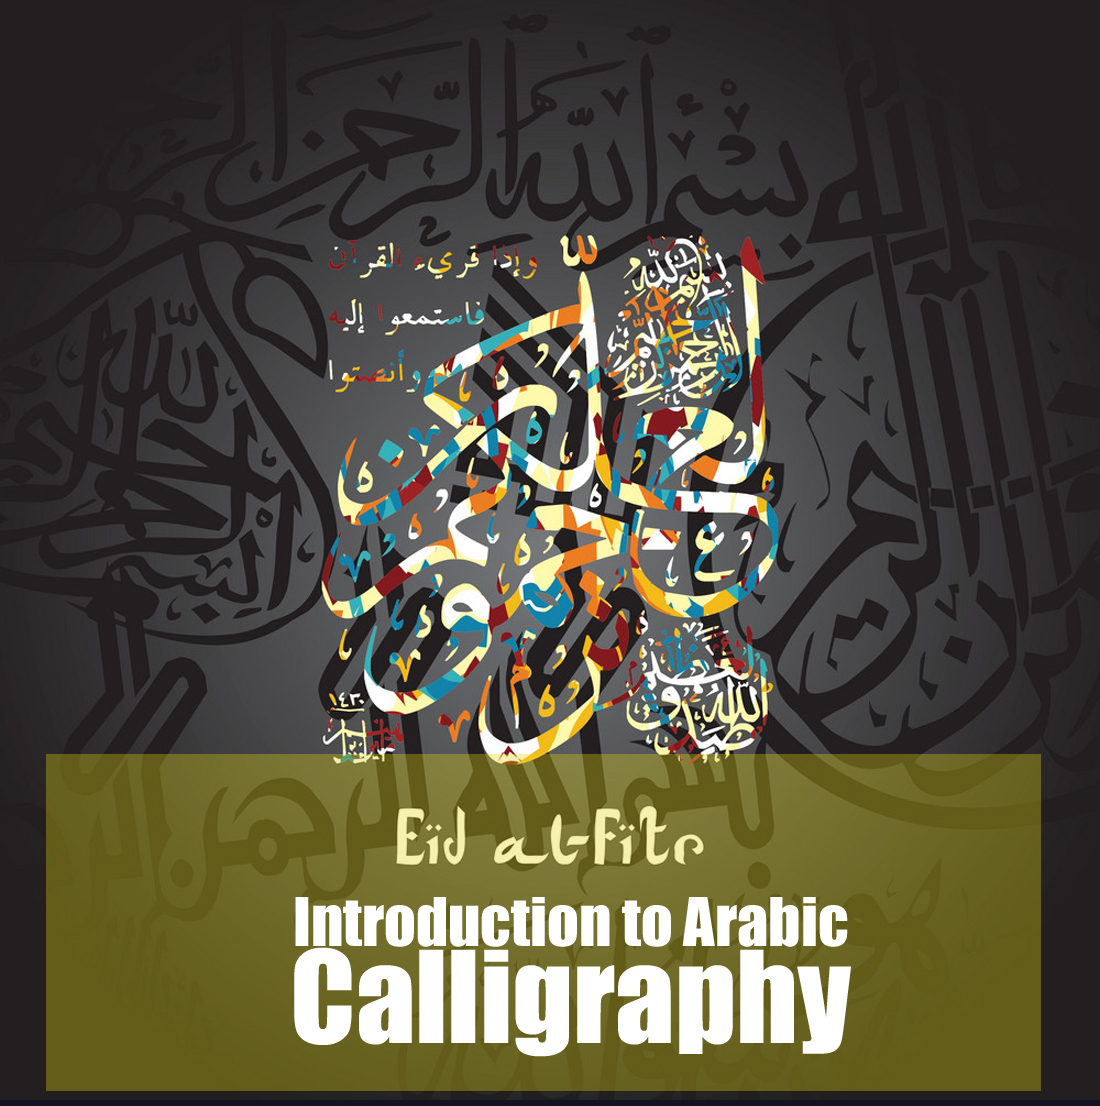 Artowz Advanced Art And Design Introduction To Arabic Calligraphy